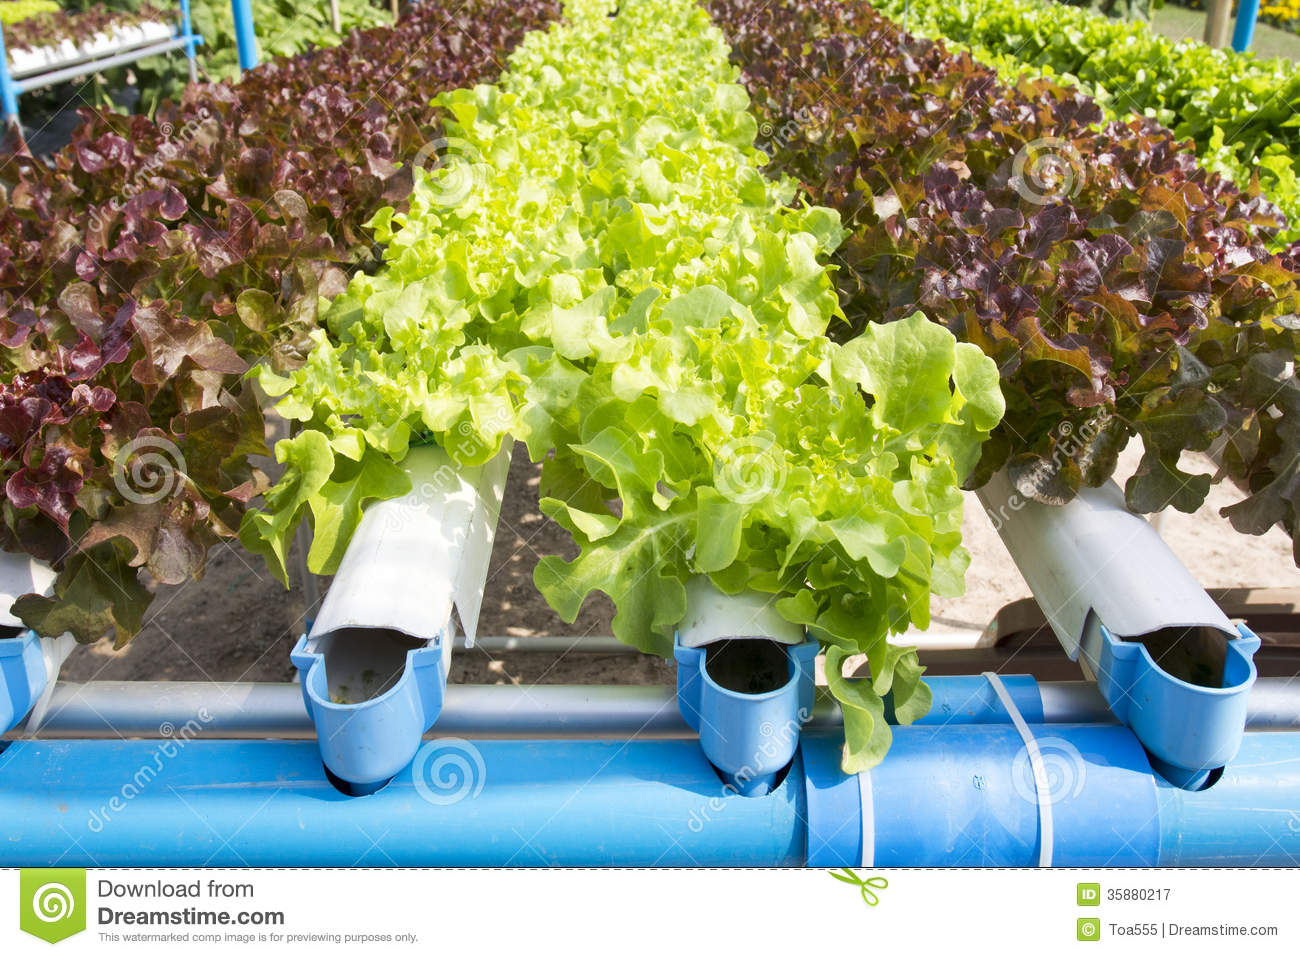 Hydroponic Vegetable Garden Royalty Free Stock Photography Image